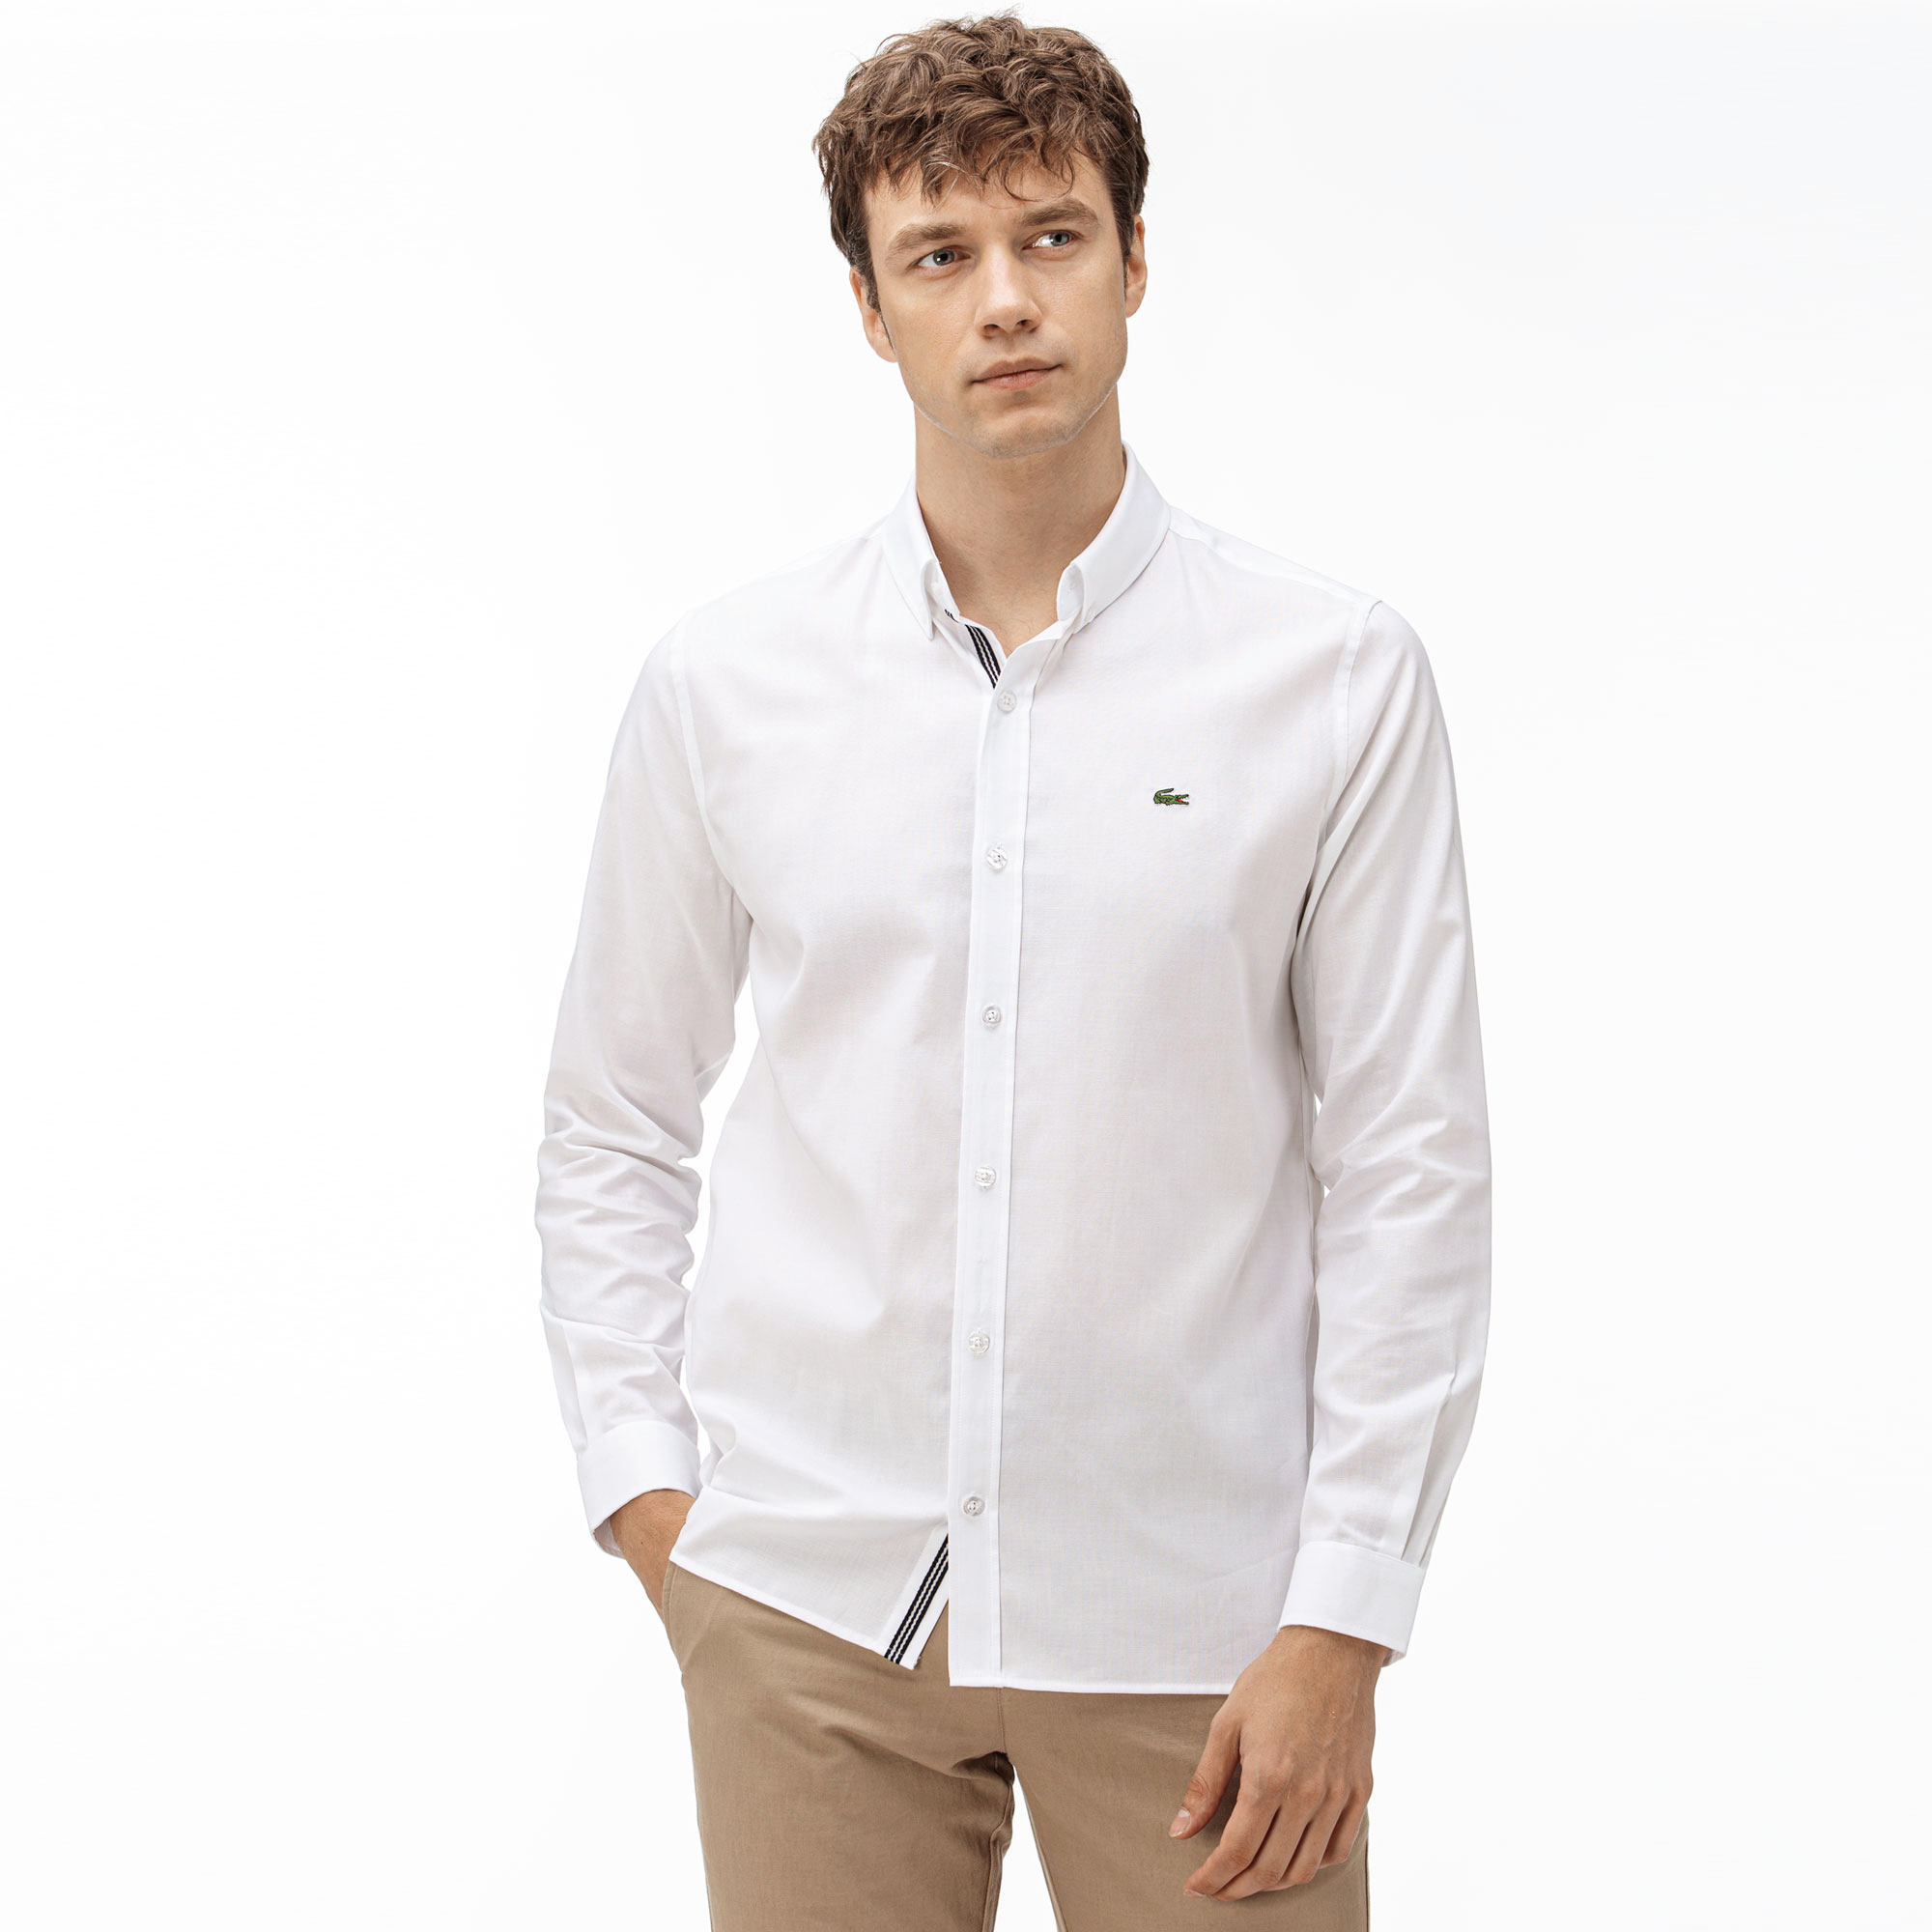 Lacoste Men's Slim Fit Oxford Shirt